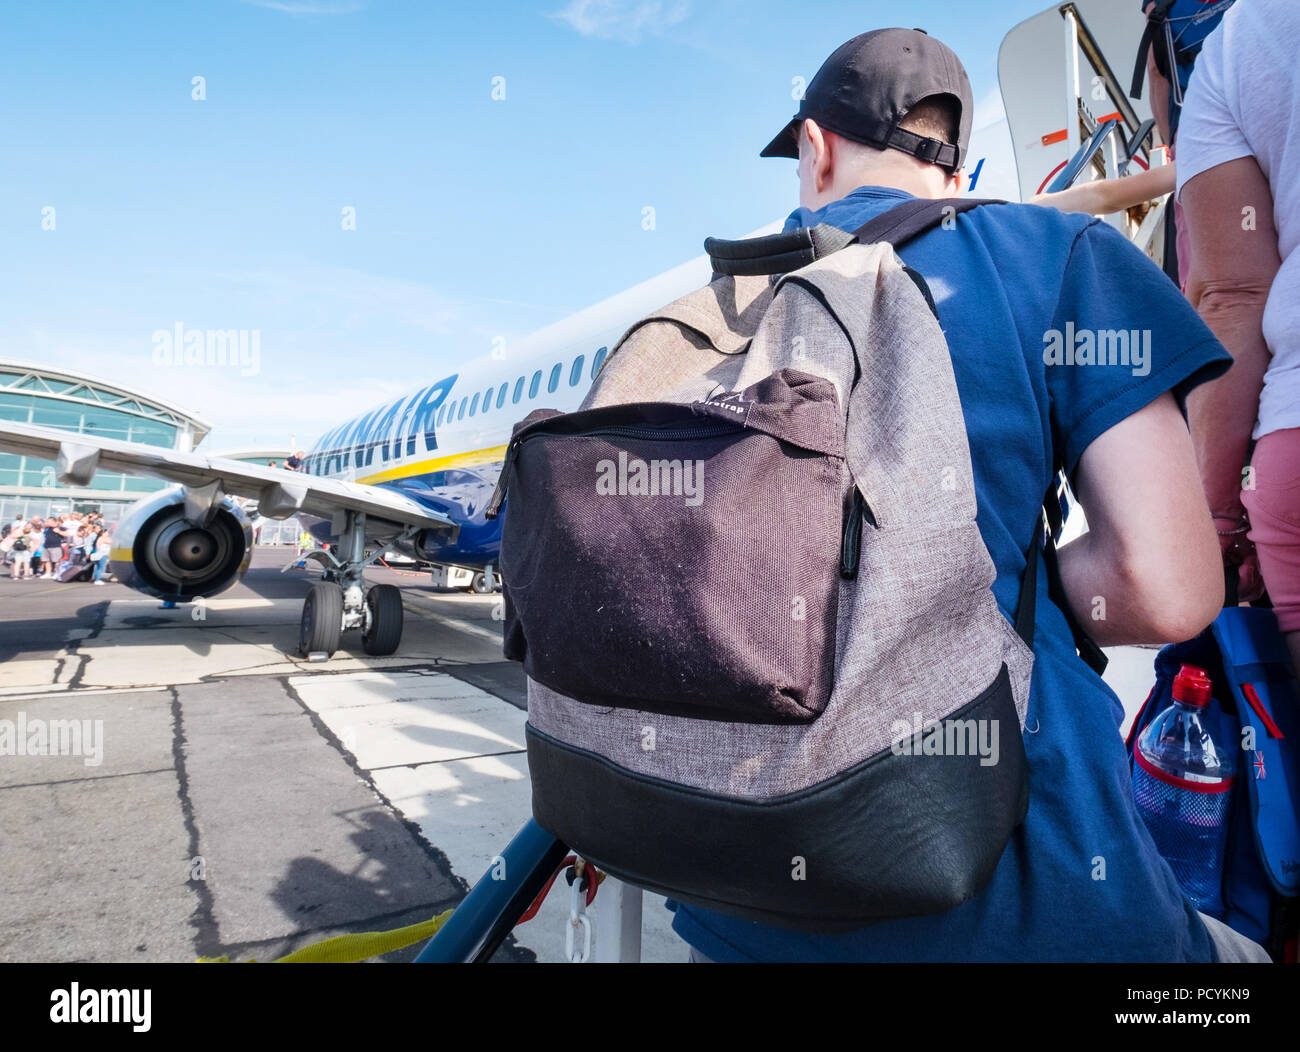 Ryanair passenger with a backpack as carry on hand luggage boarding a Ryanair plane after paying extra for priority boarding. - Stock Image